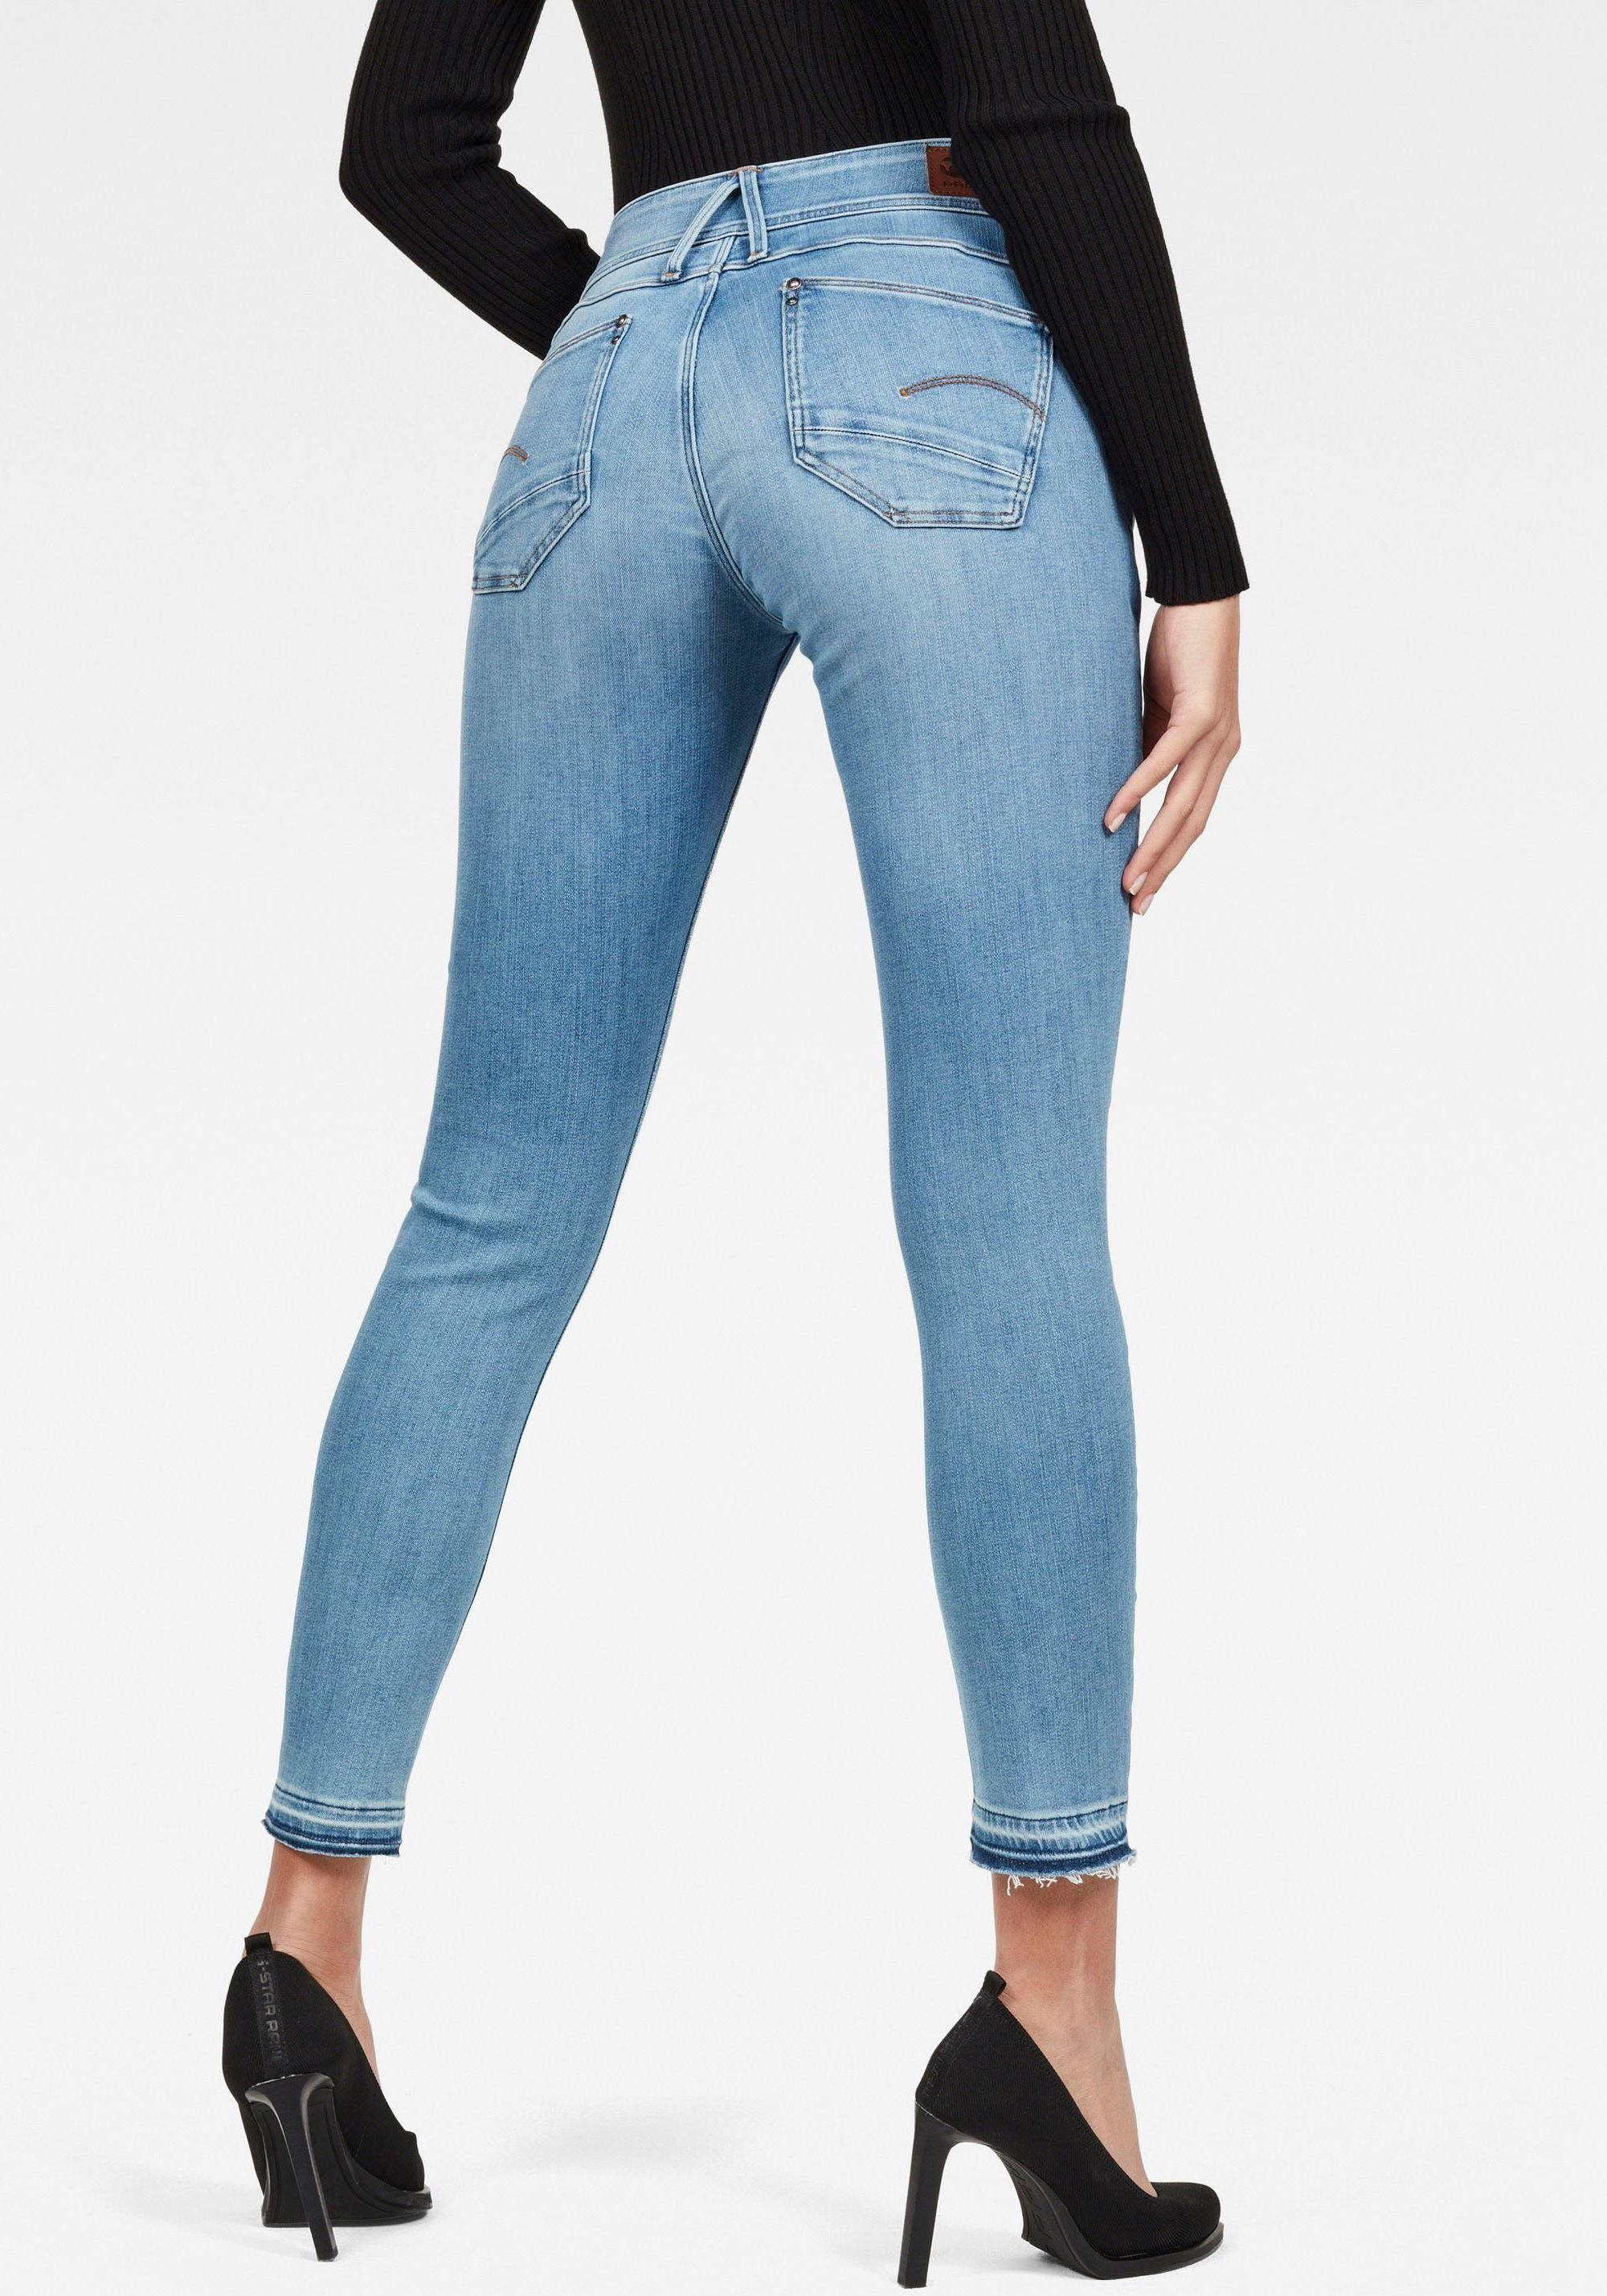 G Star RAW Skinny fit Jeans »Lynn Mid Waist Skinny Ripped« Ankle Jeans mit Elasthan Anteil online kaufen | OTTO